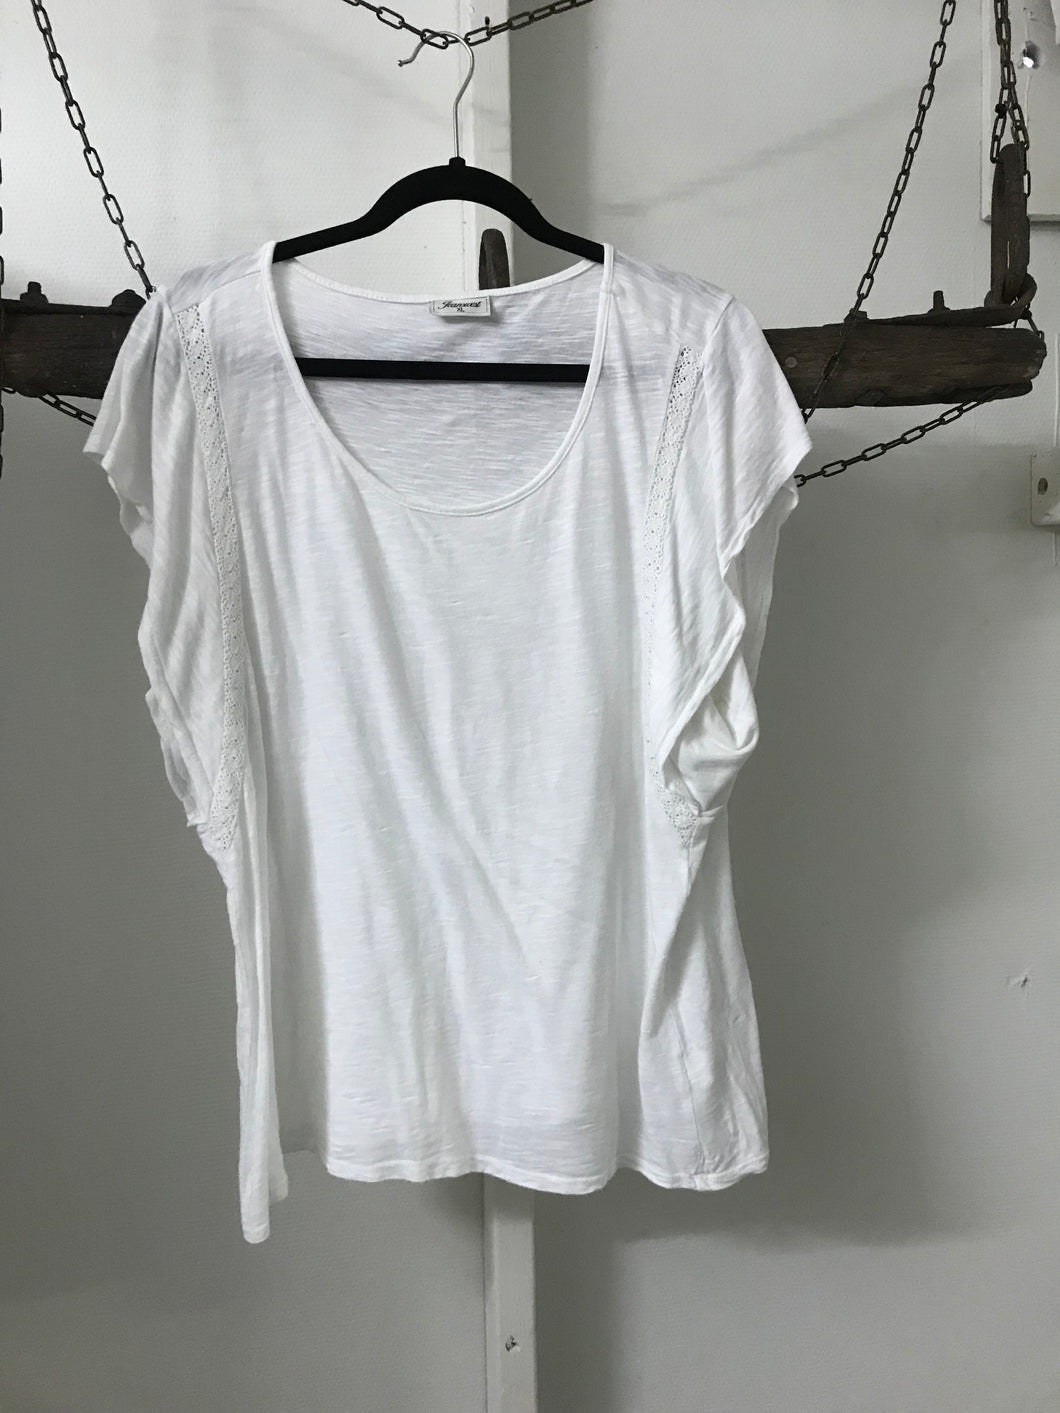 Jeanswest White T-shirt with lace trim Size XL (estimated 16-18)